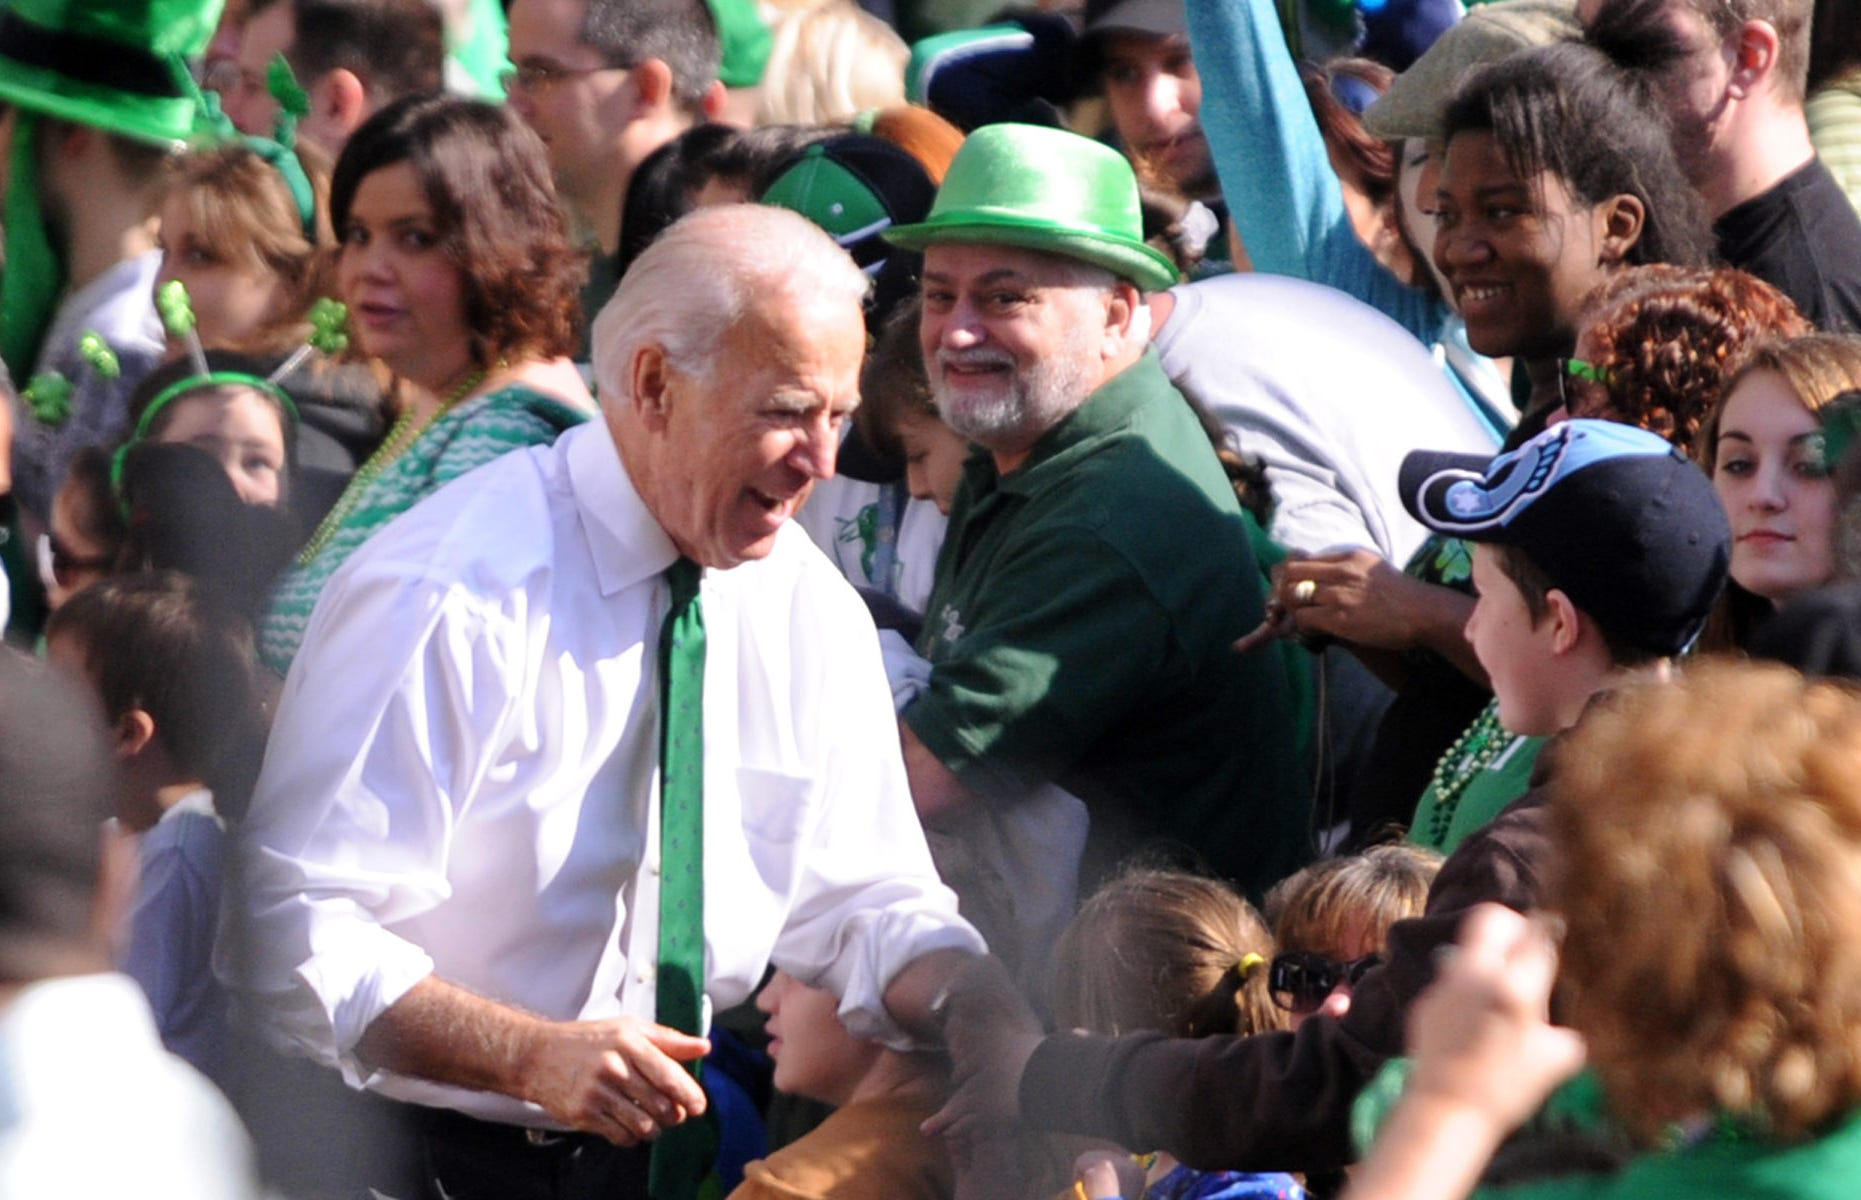 Then-Vice President Joe Biden greets people as he walks in the annual St. Patrick's Day Parade in Pittsburgh, Pennsylvania, March 17, 2012.